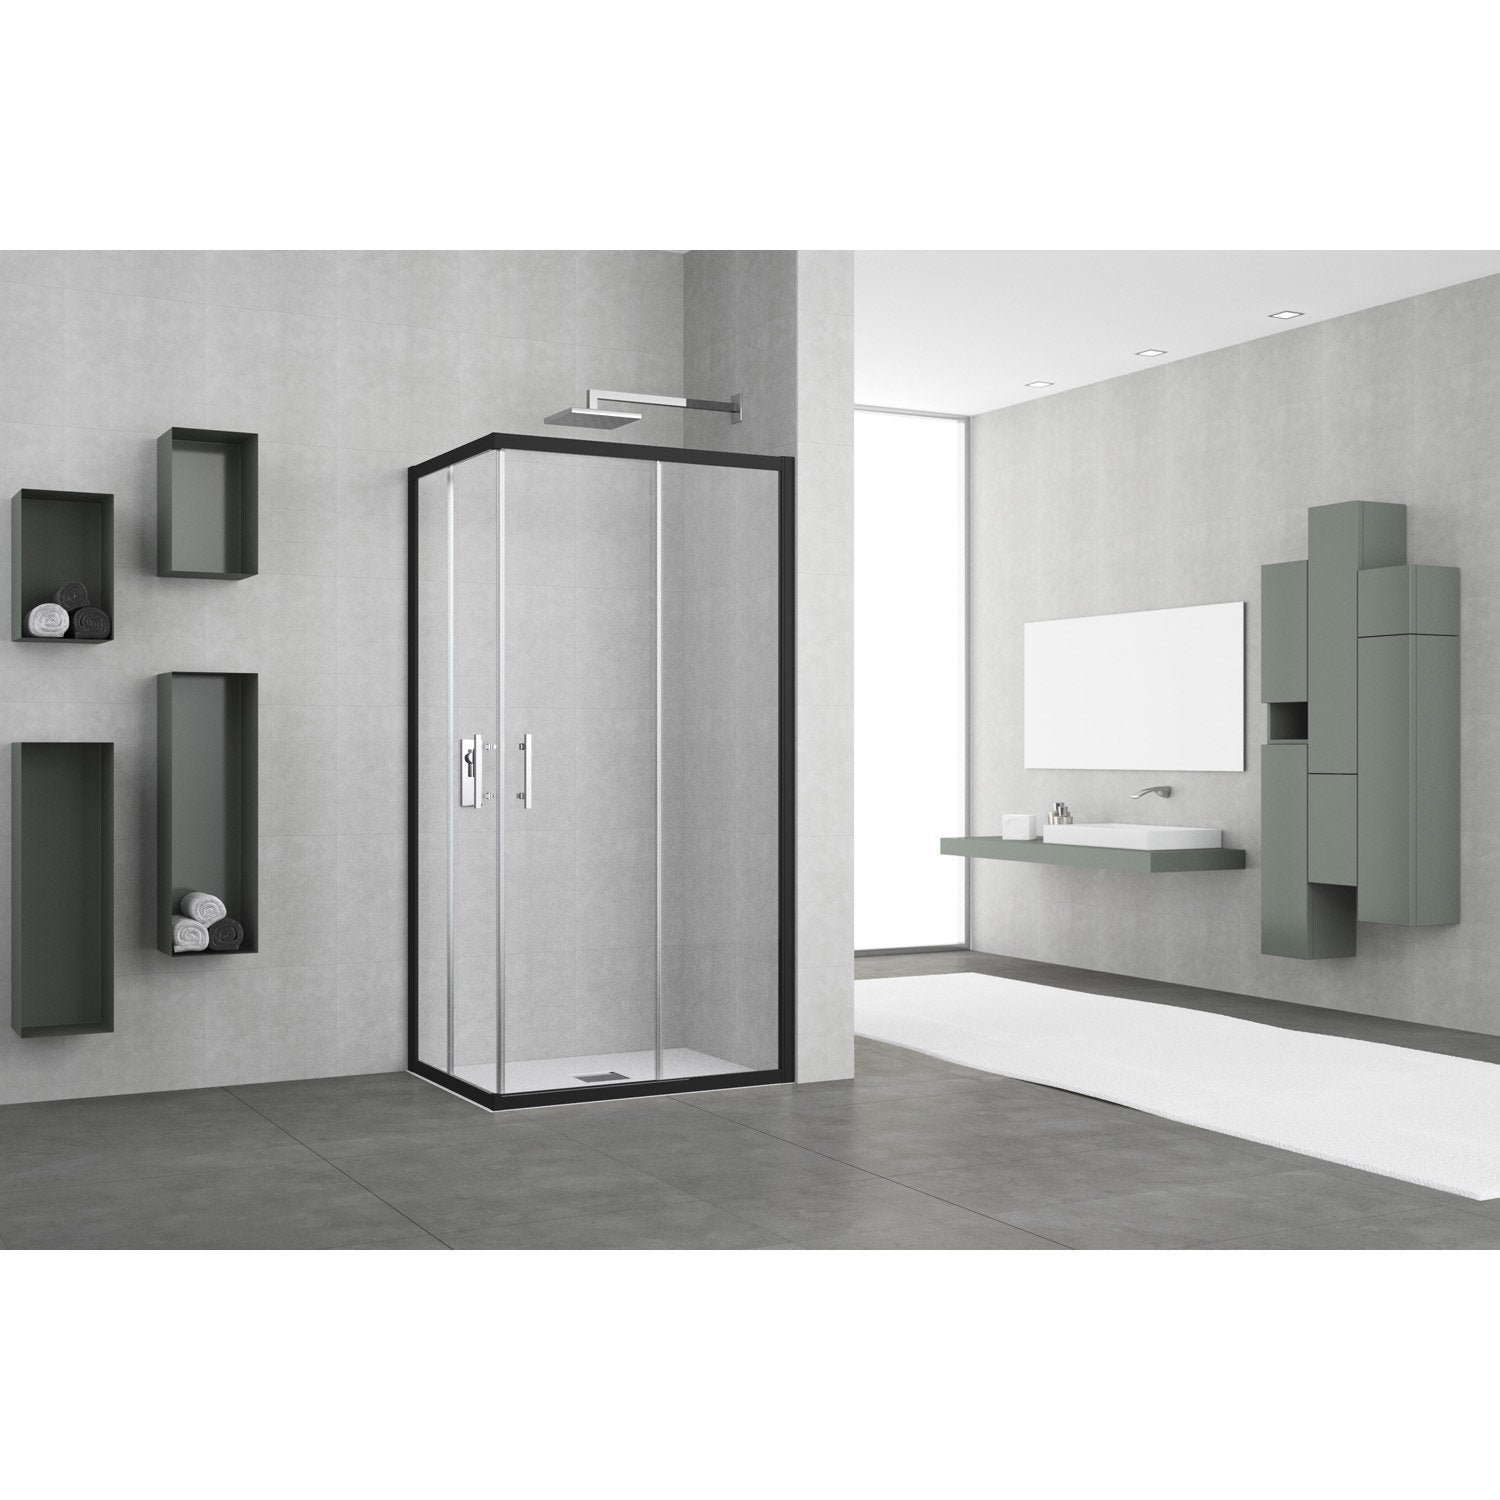 Porte de douche coulissante angle rectangle x cm noir elyt leroy merlin - Porte de douche d angle coulissante ...